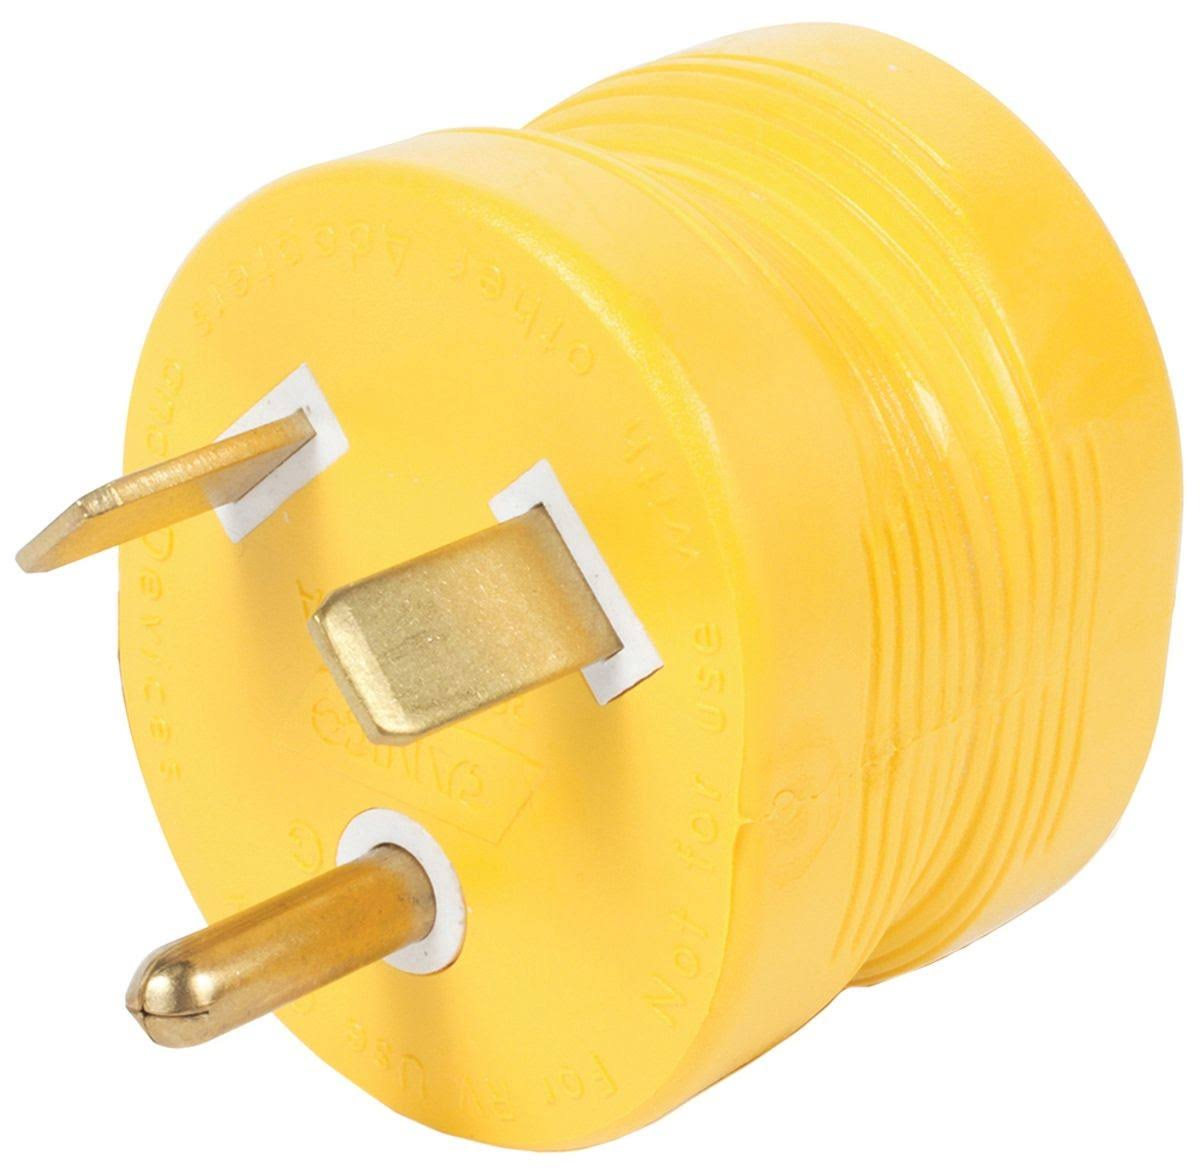 Camco Power Grip Electrical Adapter